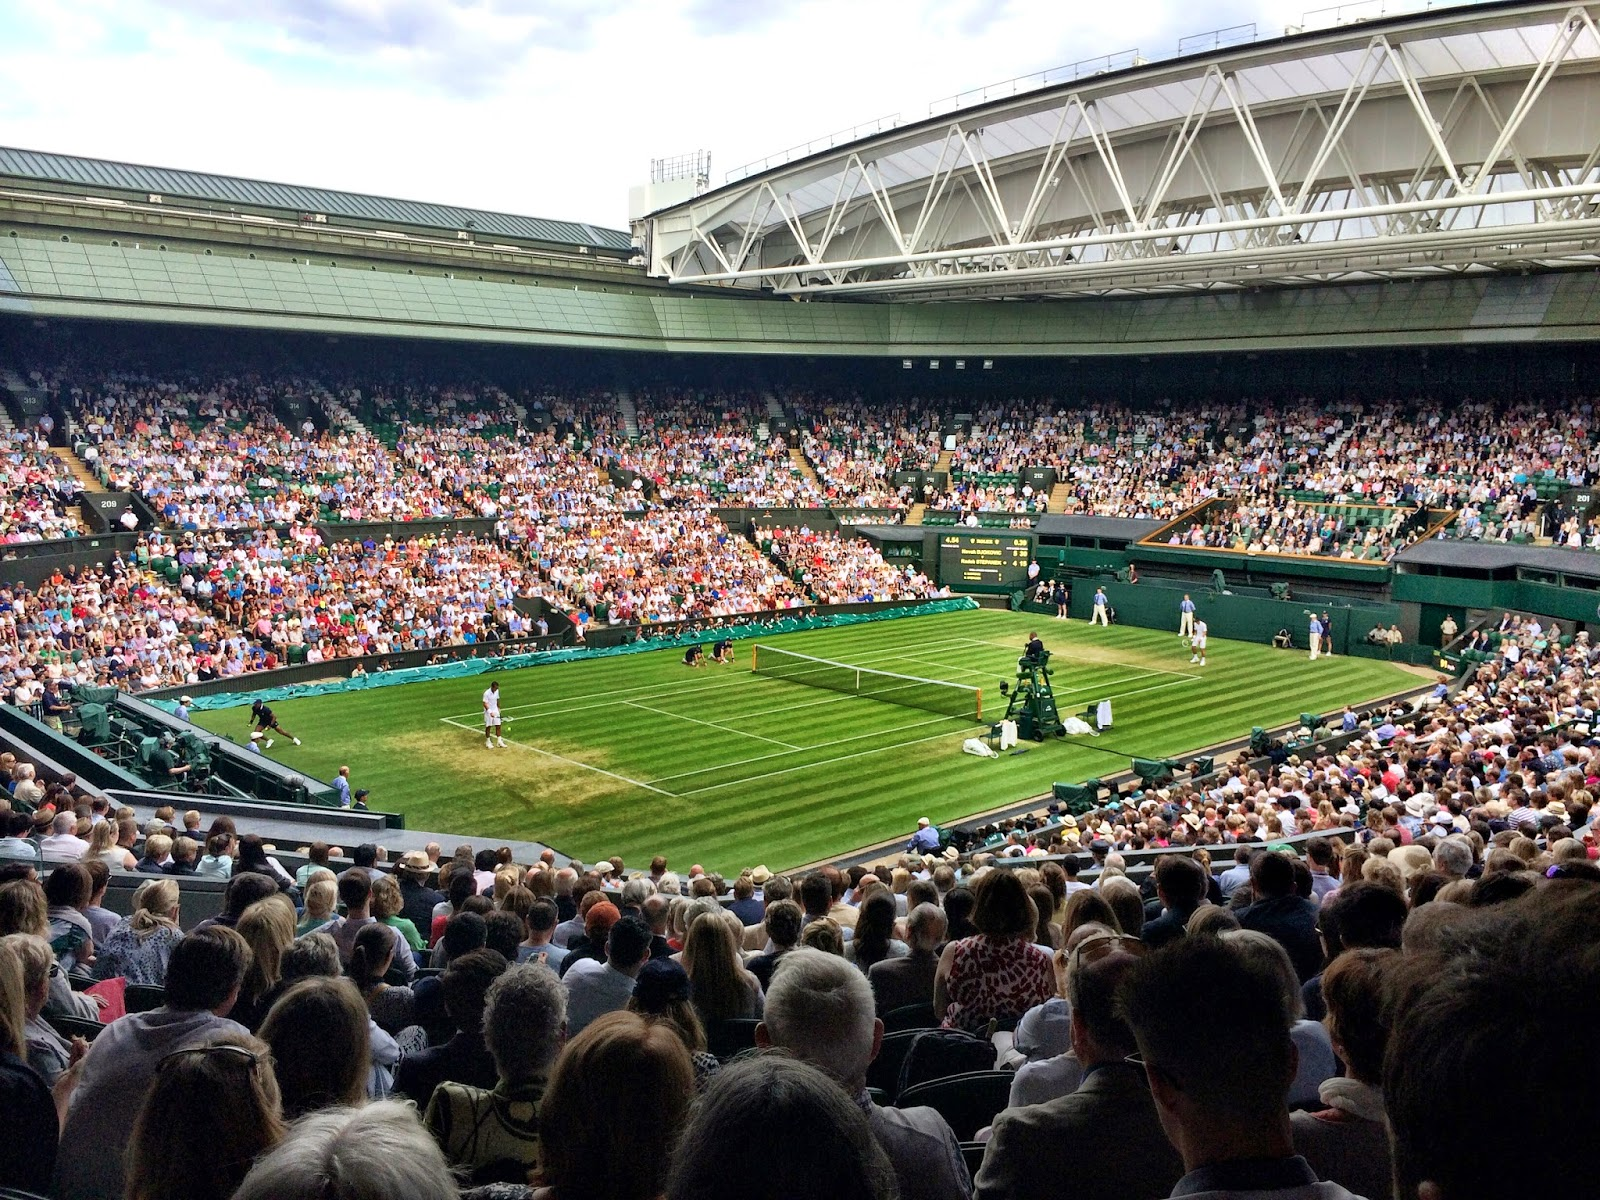 Djokovic playing Stepanek on Cenre Court - Wimbledon 2014